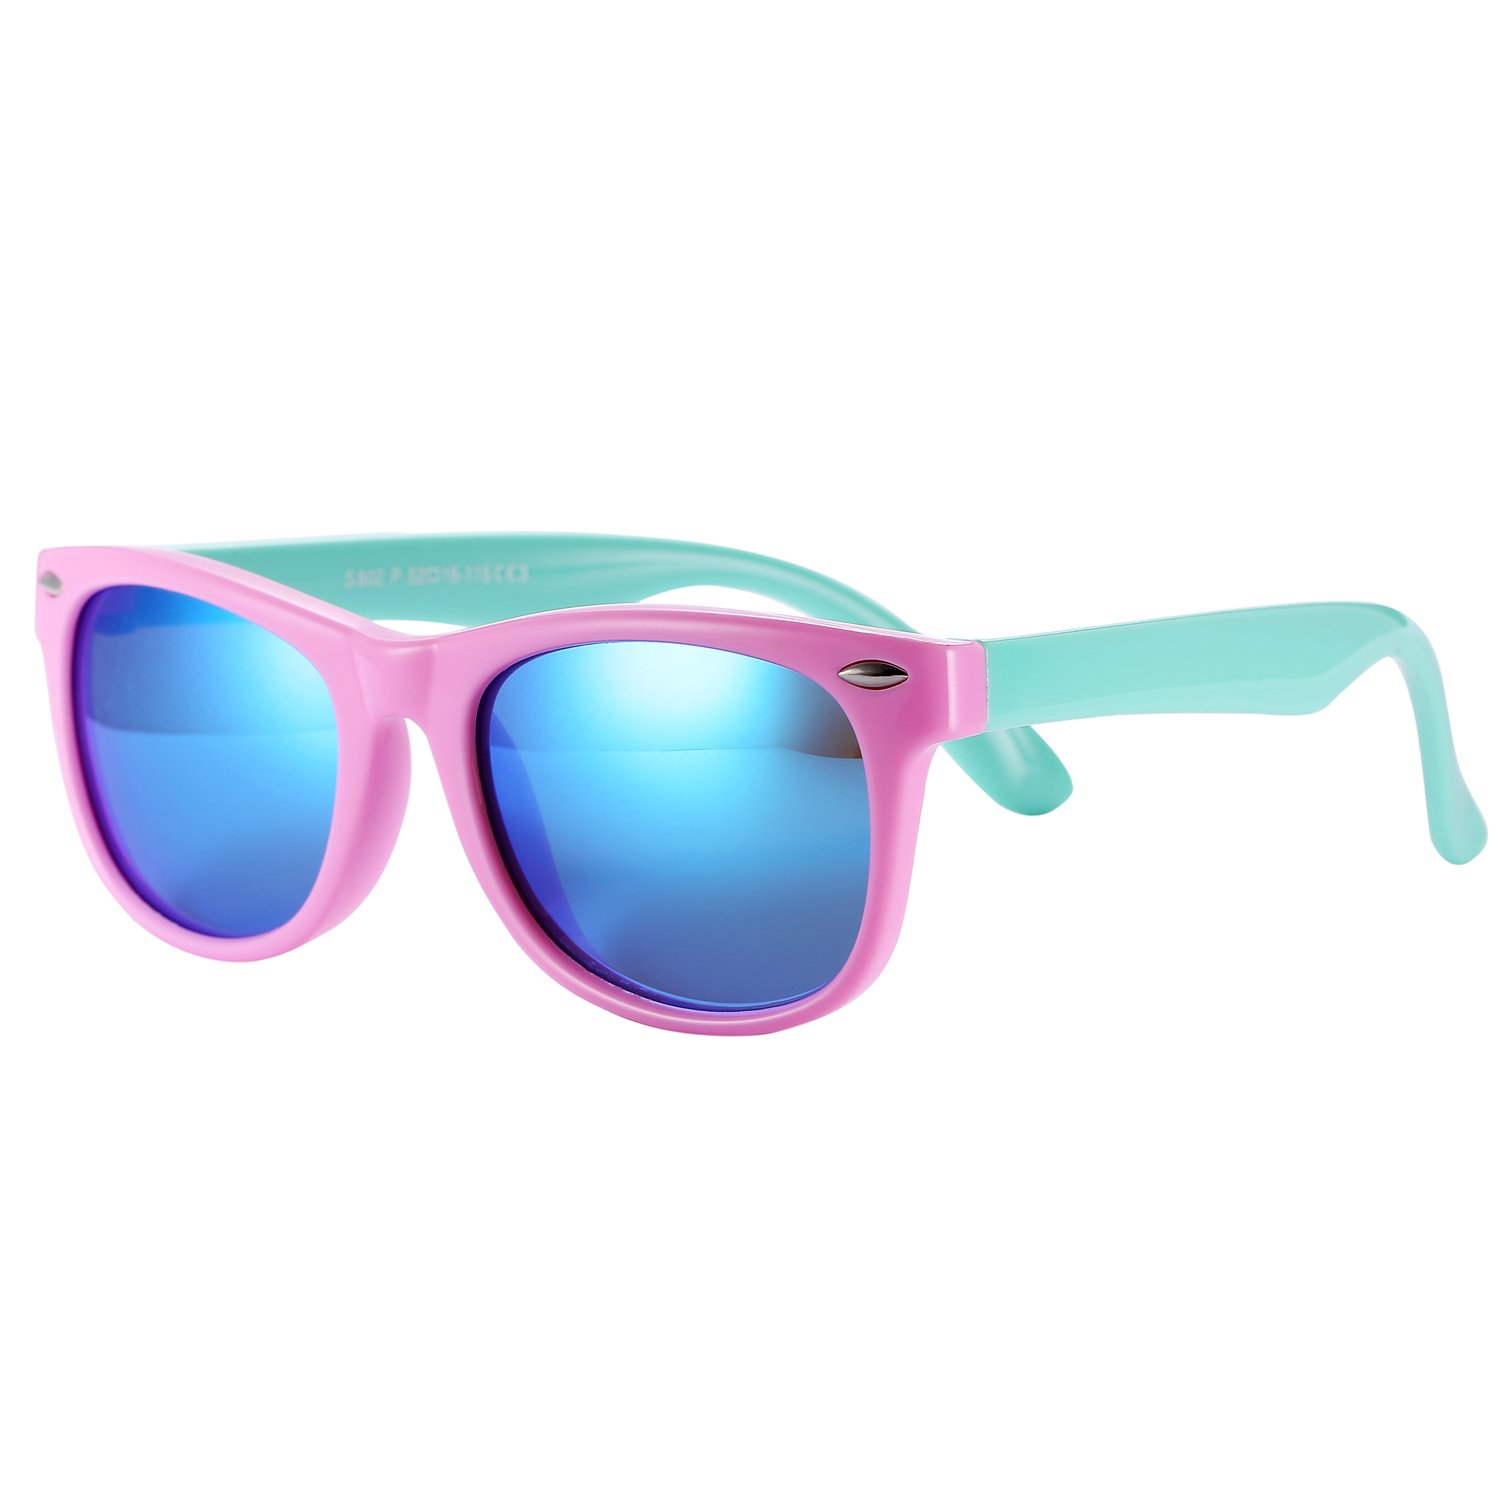 Pro Acme TPEE Rubber Flexible Kids Polarized Sunglasses for Baby and Children Age 3-10 (Pink Frame/Blue Mirrored Lens) by Pro Acme